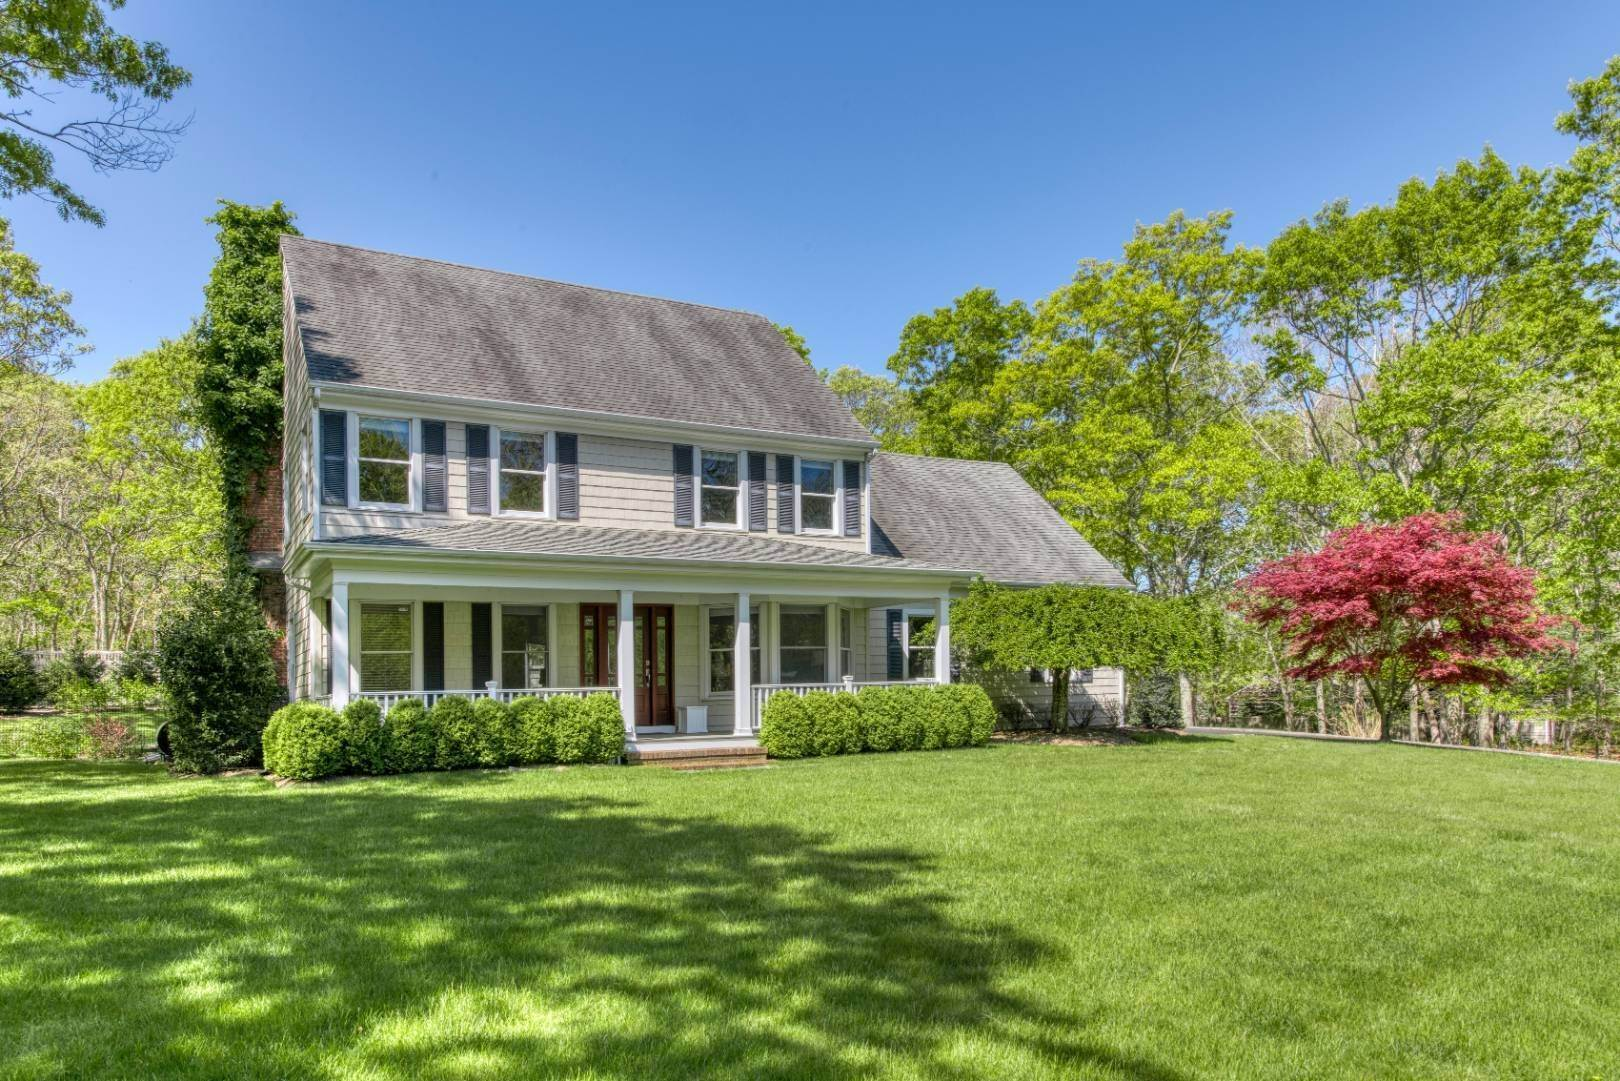 Single Family Home for Sale at Turnkey Sag Harbor 3 Br With Bonus Room 8 Round Pond Lane, Sag Harbor South, NY 11963